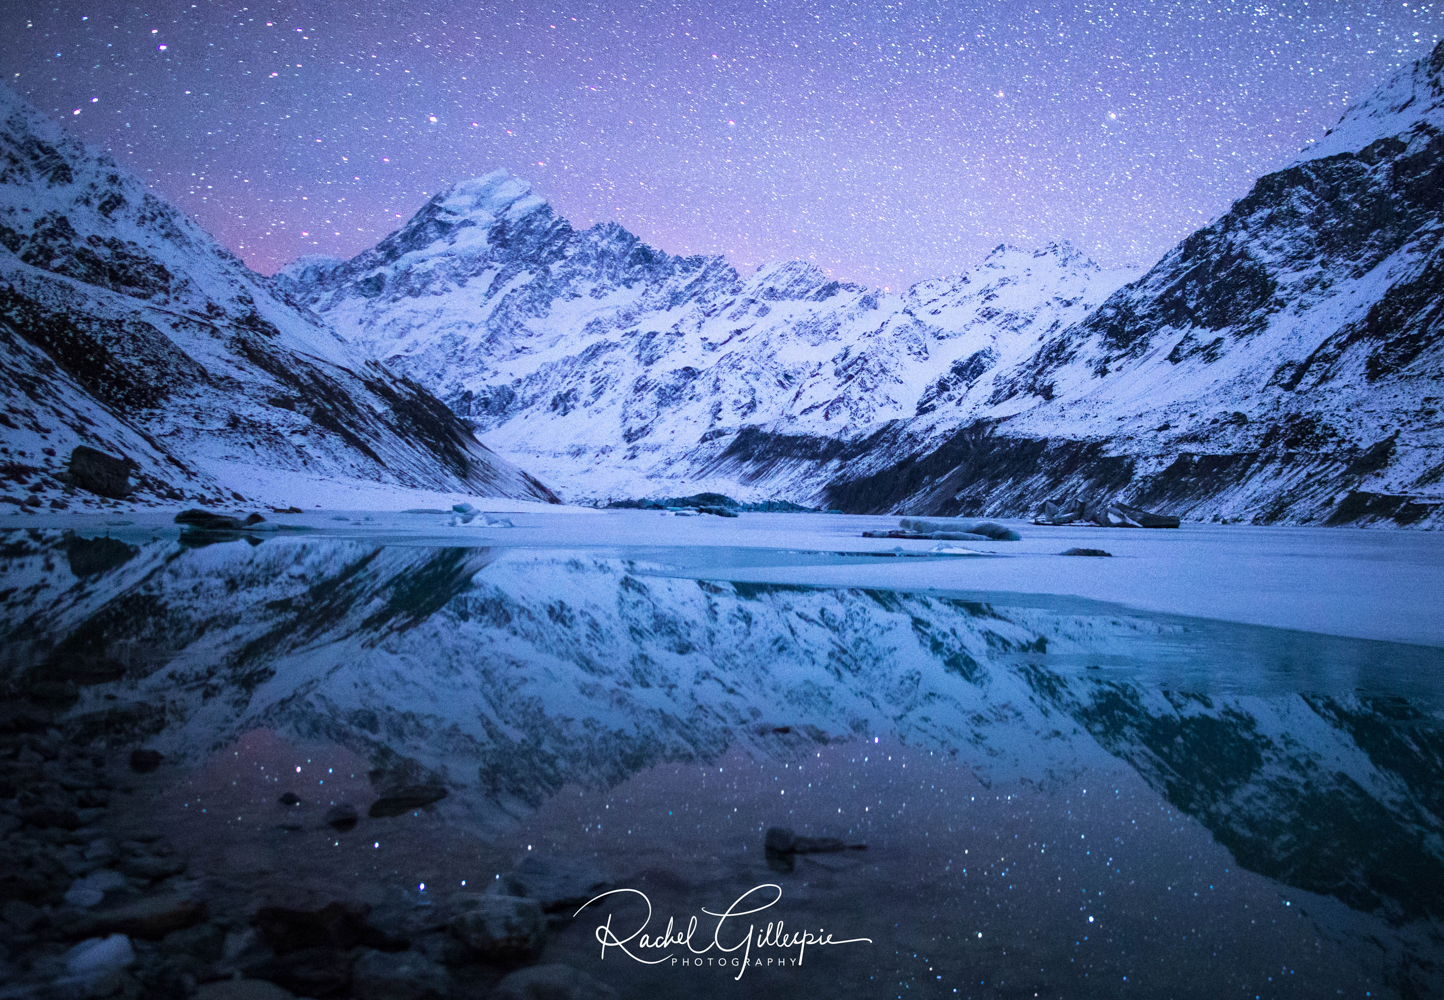 Hooker Lake Astro Night July 2017 with t